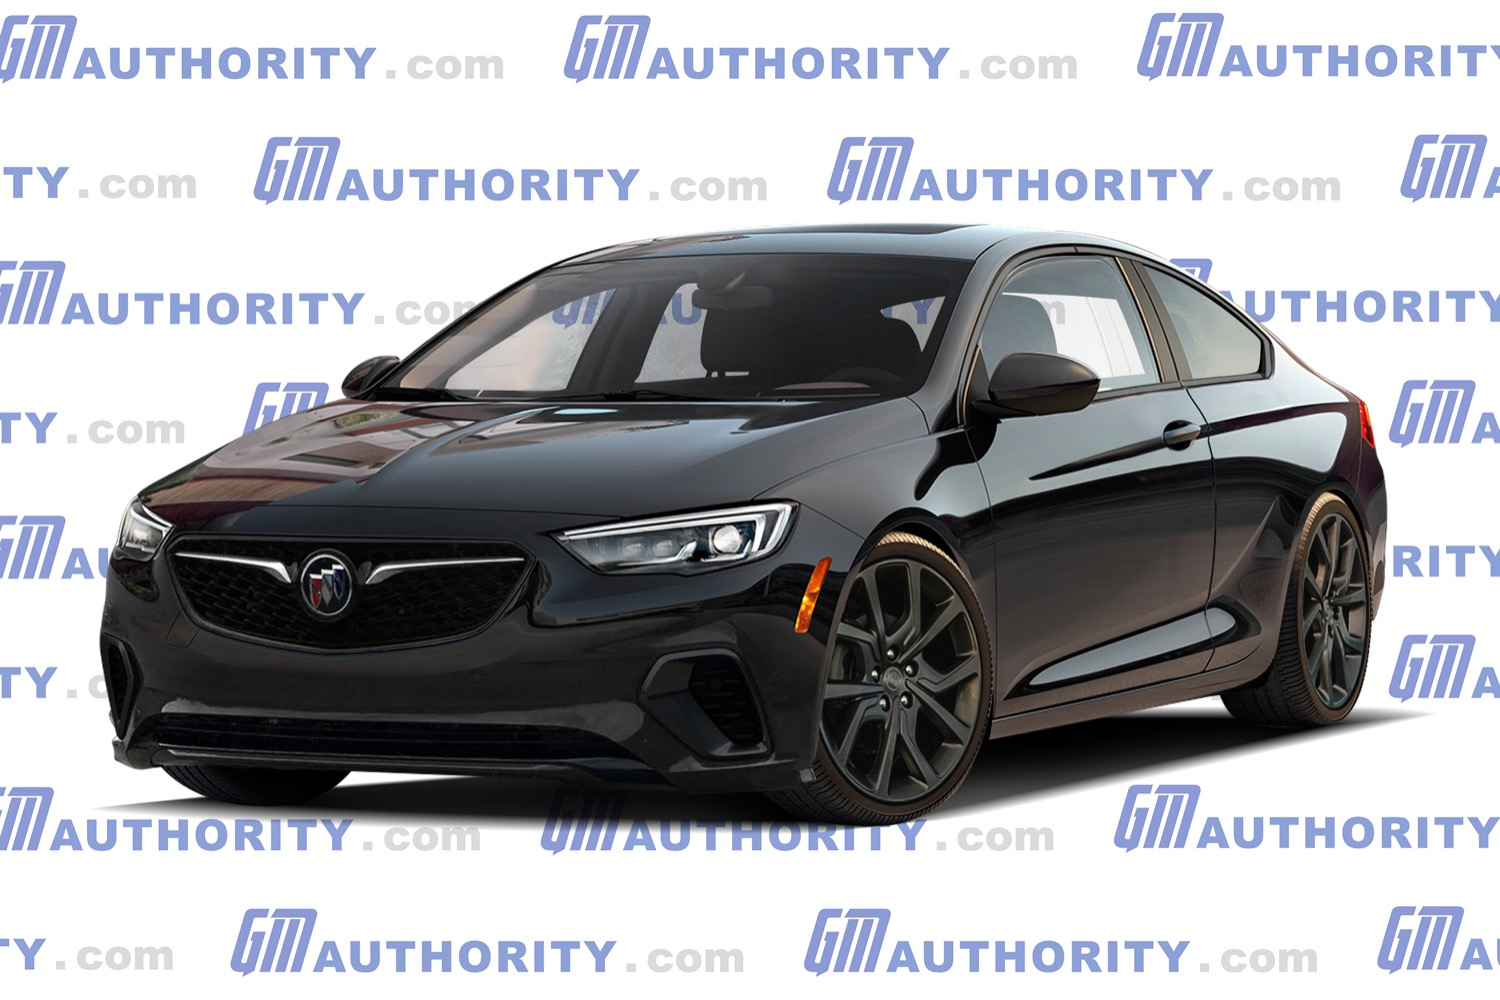 Modern Buick Regal Gnx Rendered | Gm Authority 2022 Buick Verano Wheels, Engine, Dimensions